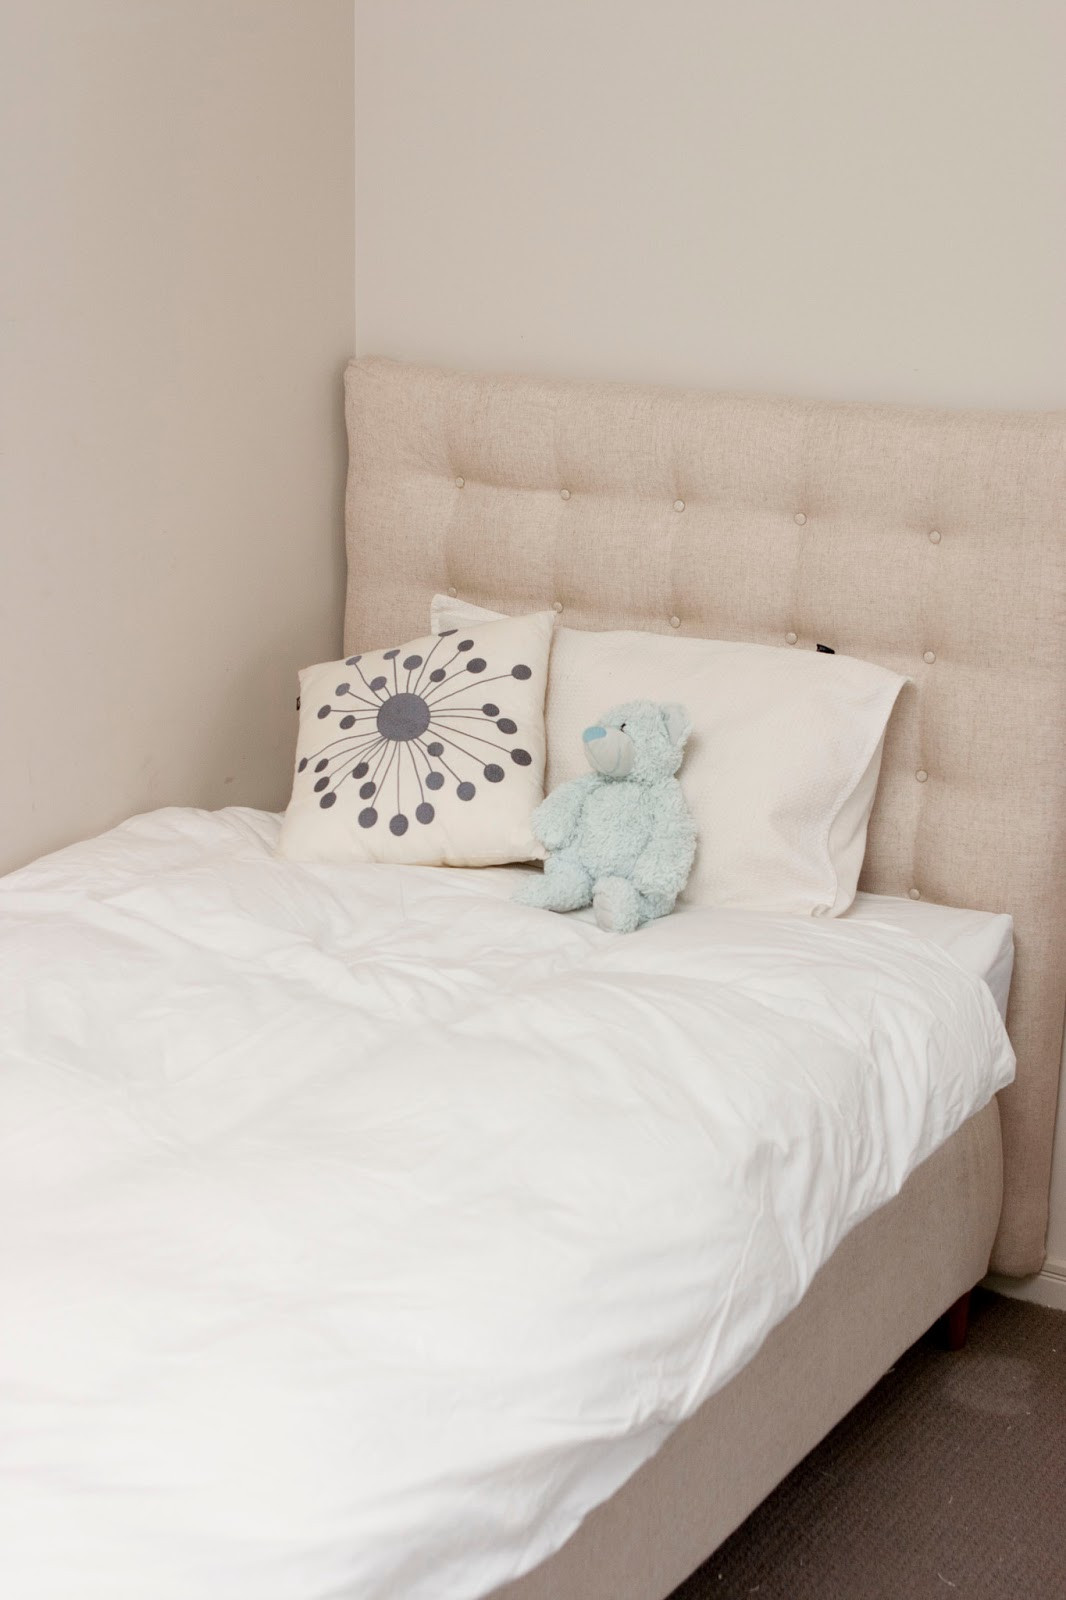 Best ideas about DIY Bed Headboards . Save or Pin Max & Me DIY Headboard and Bed Make Over Now.